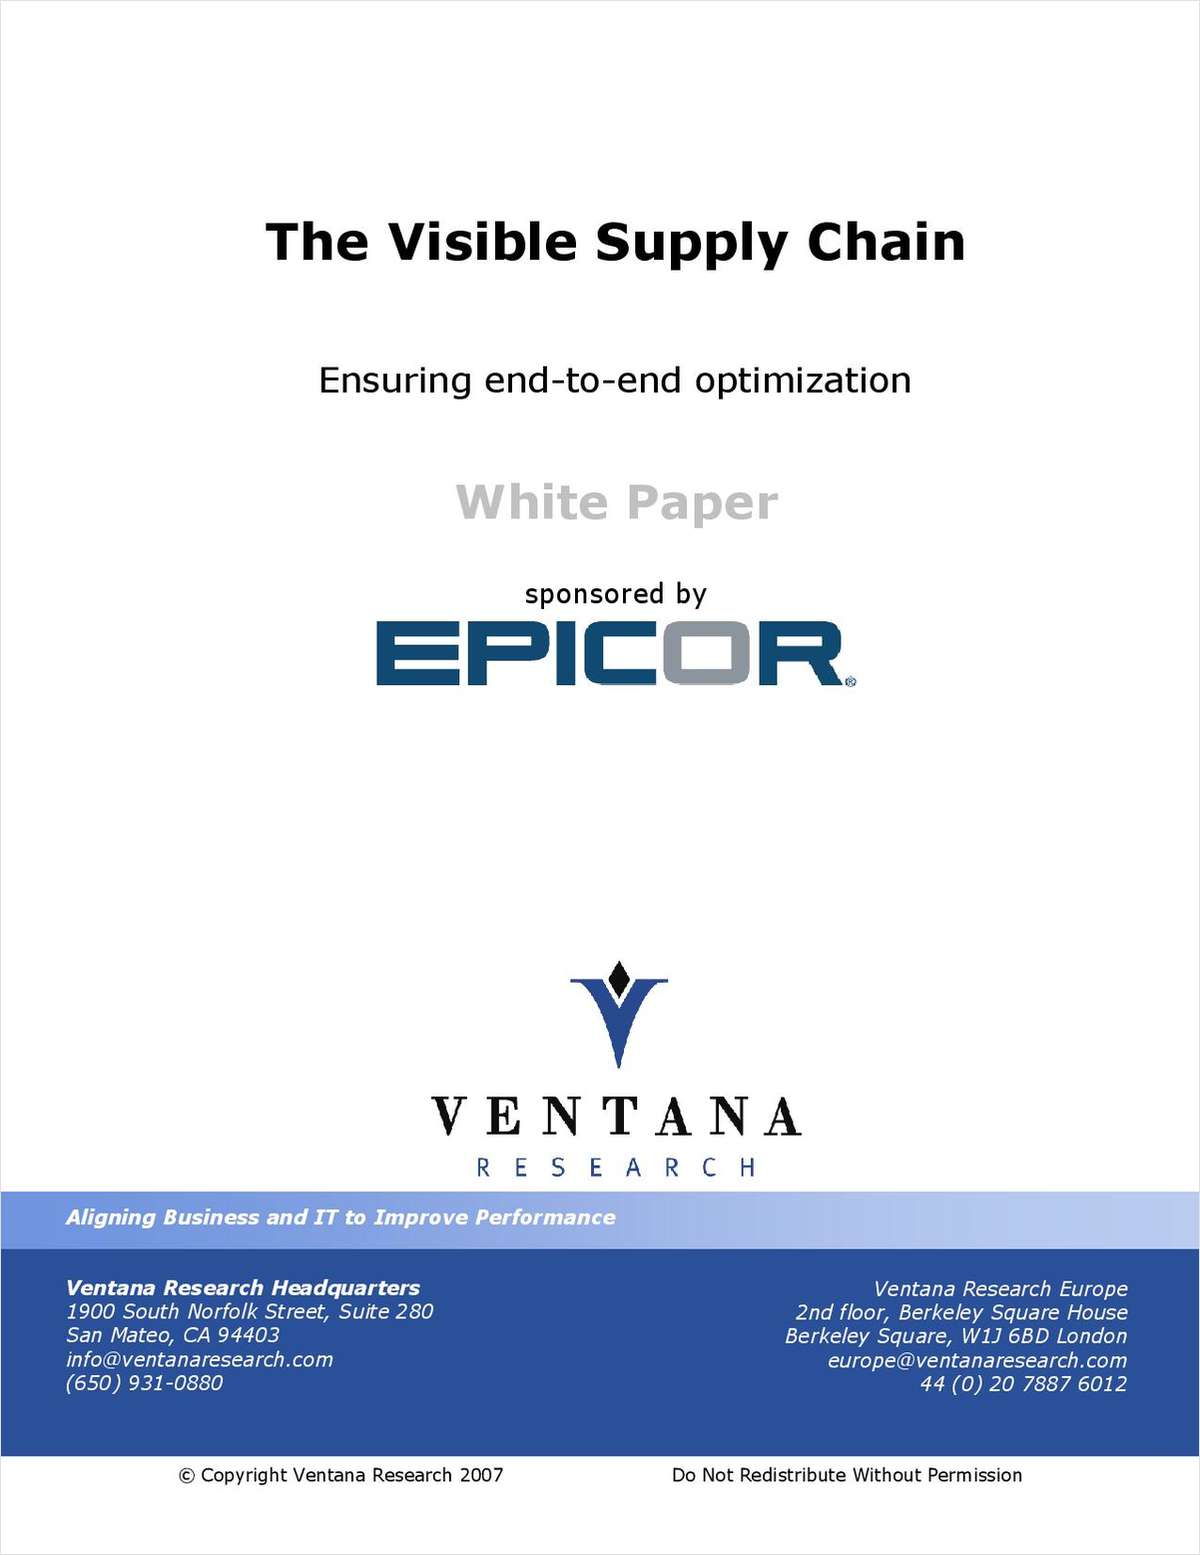 The Visible Supply Chain: Ensuring End-to-End Optimization